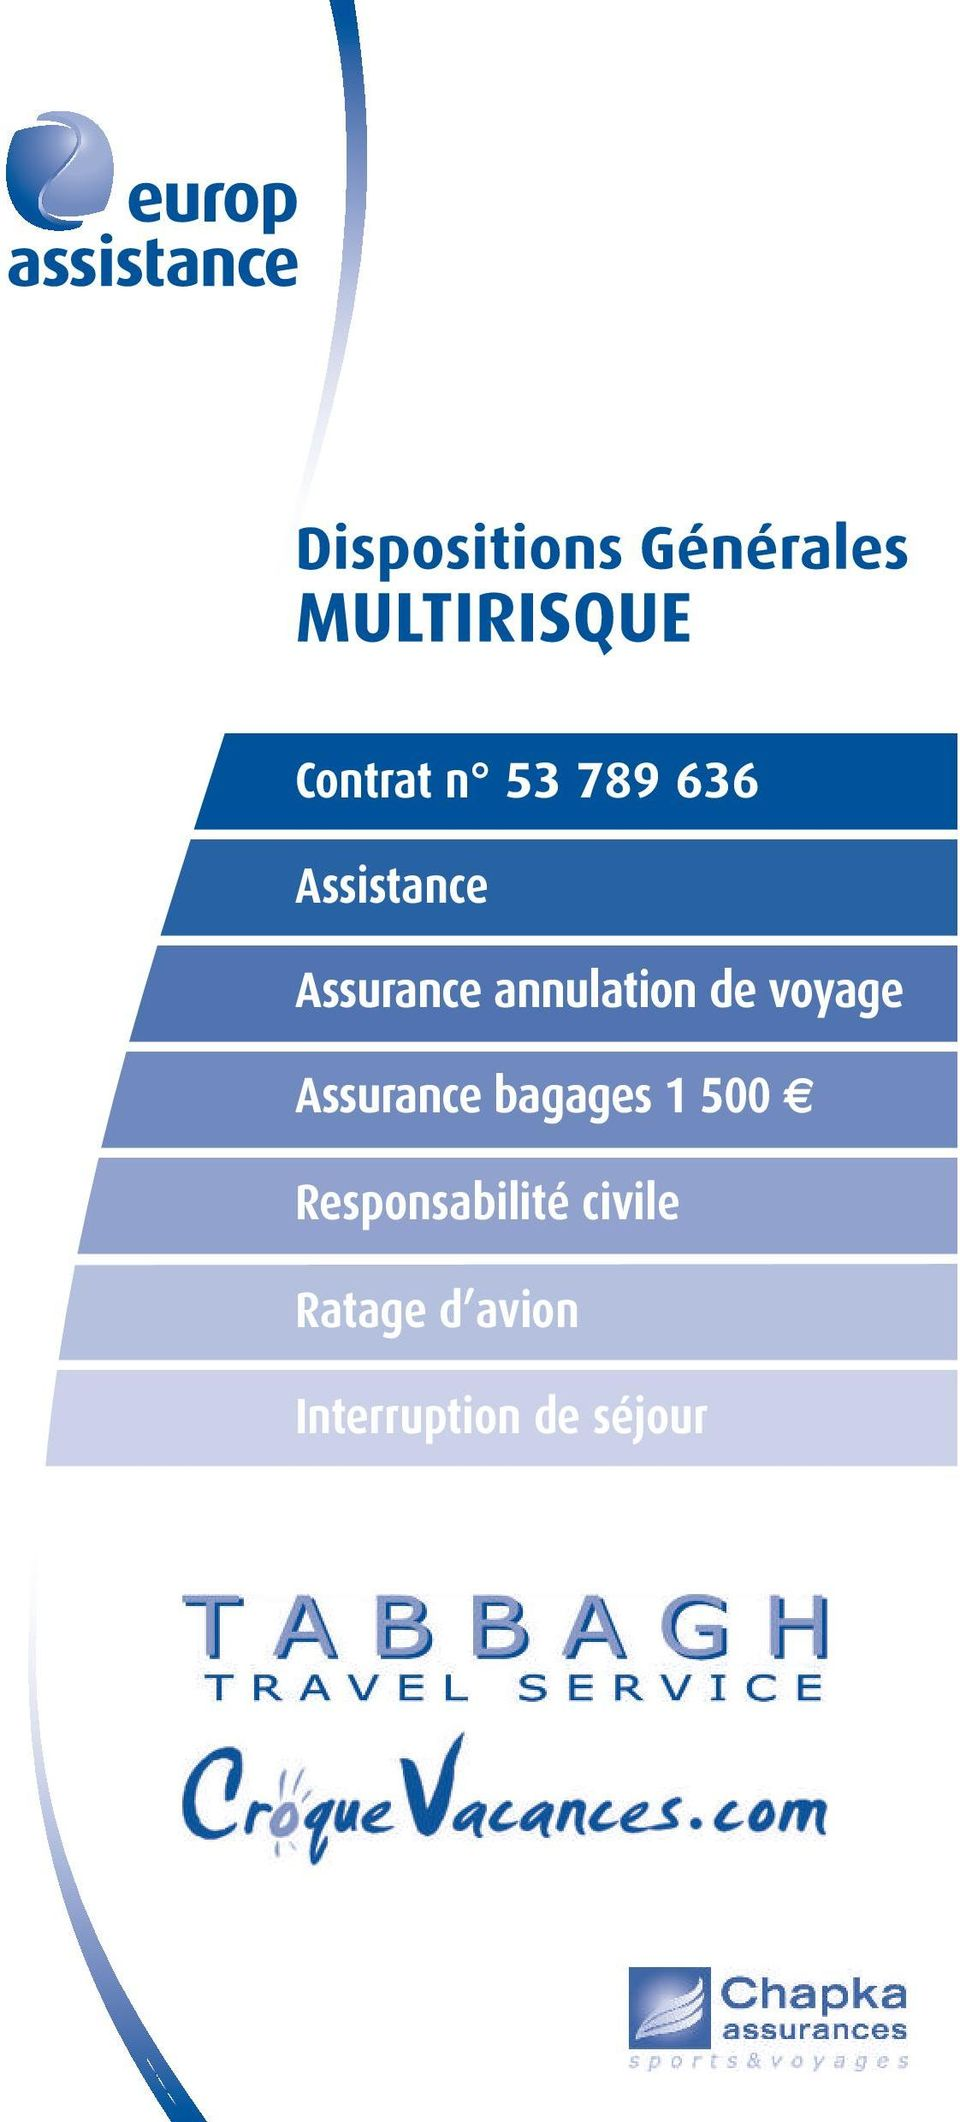 Assurance bagages 1 500